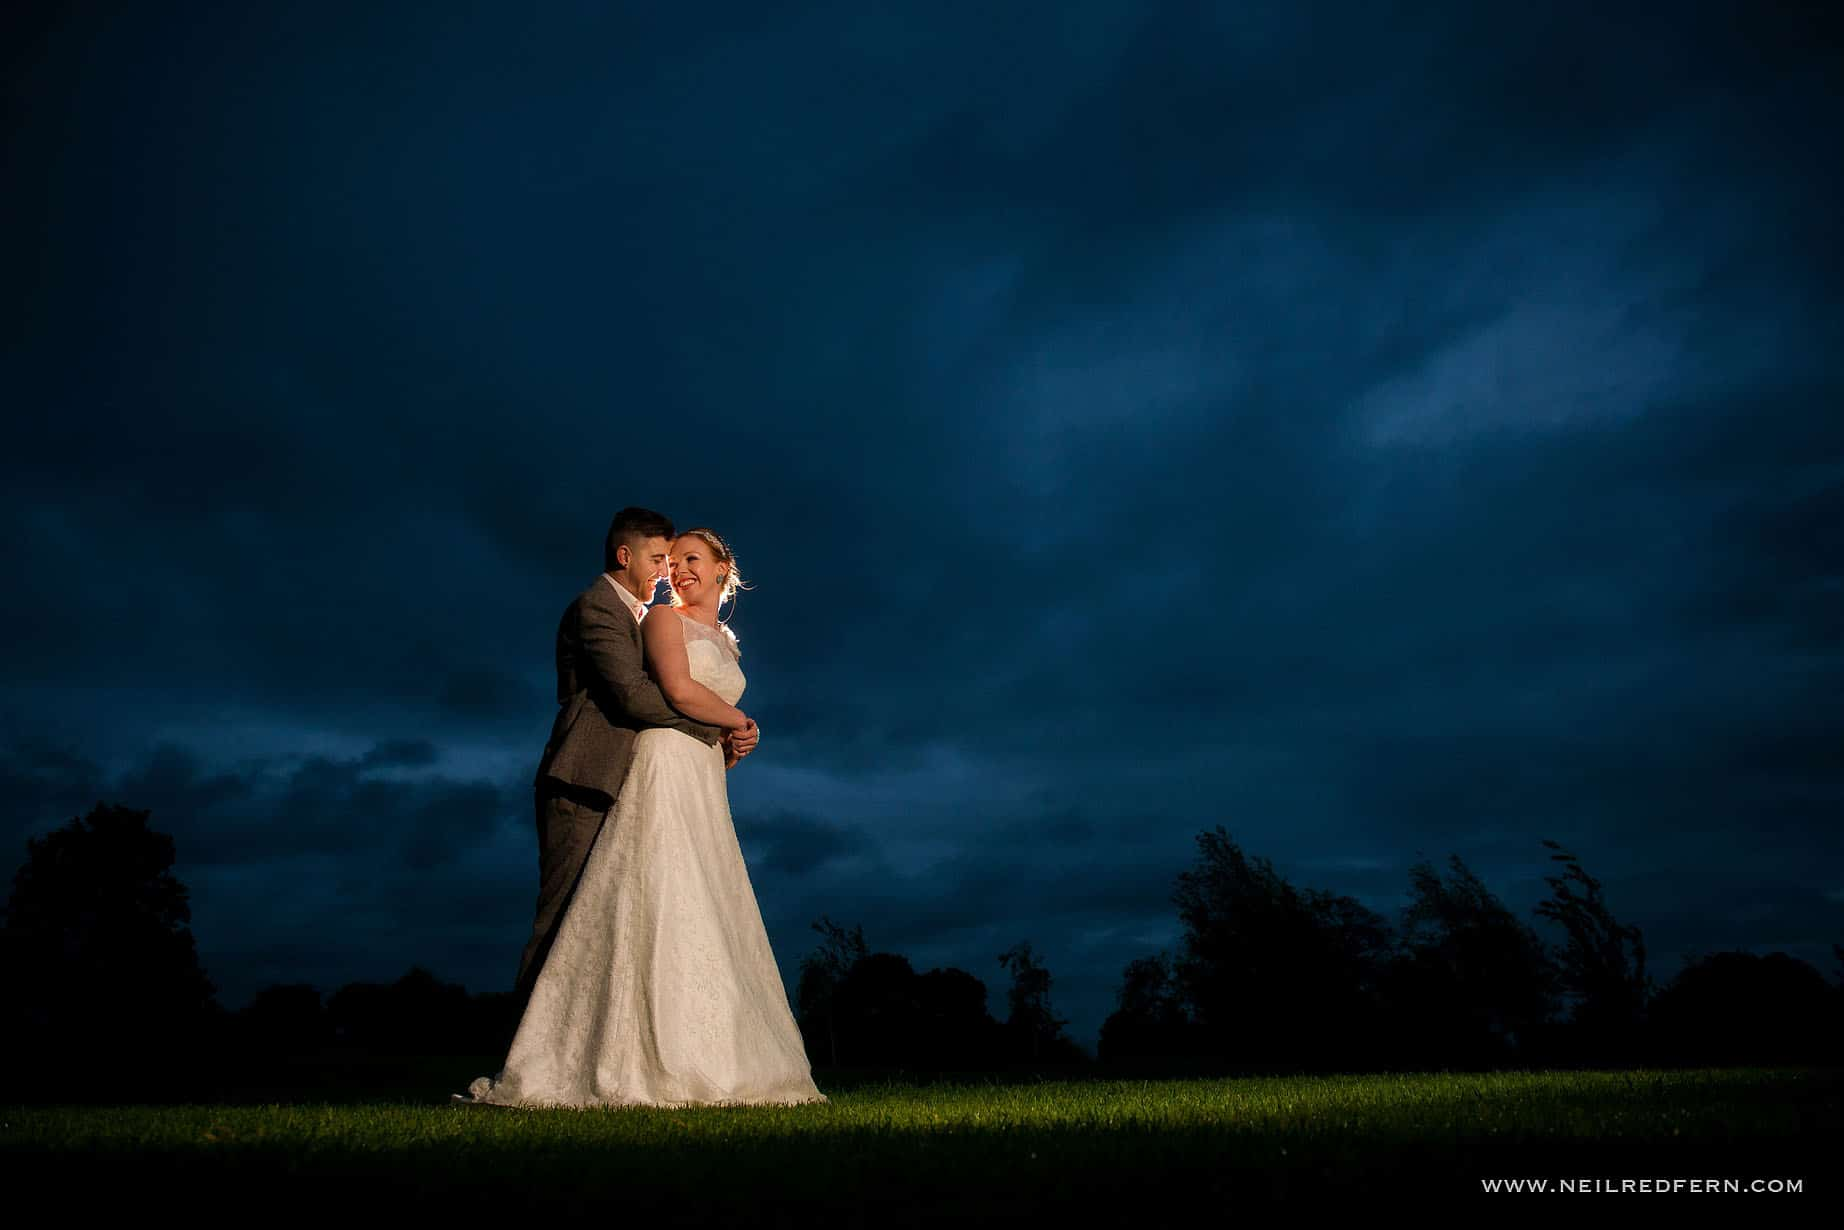 Styal Lodge wedding photography – Kirsty & Kyle